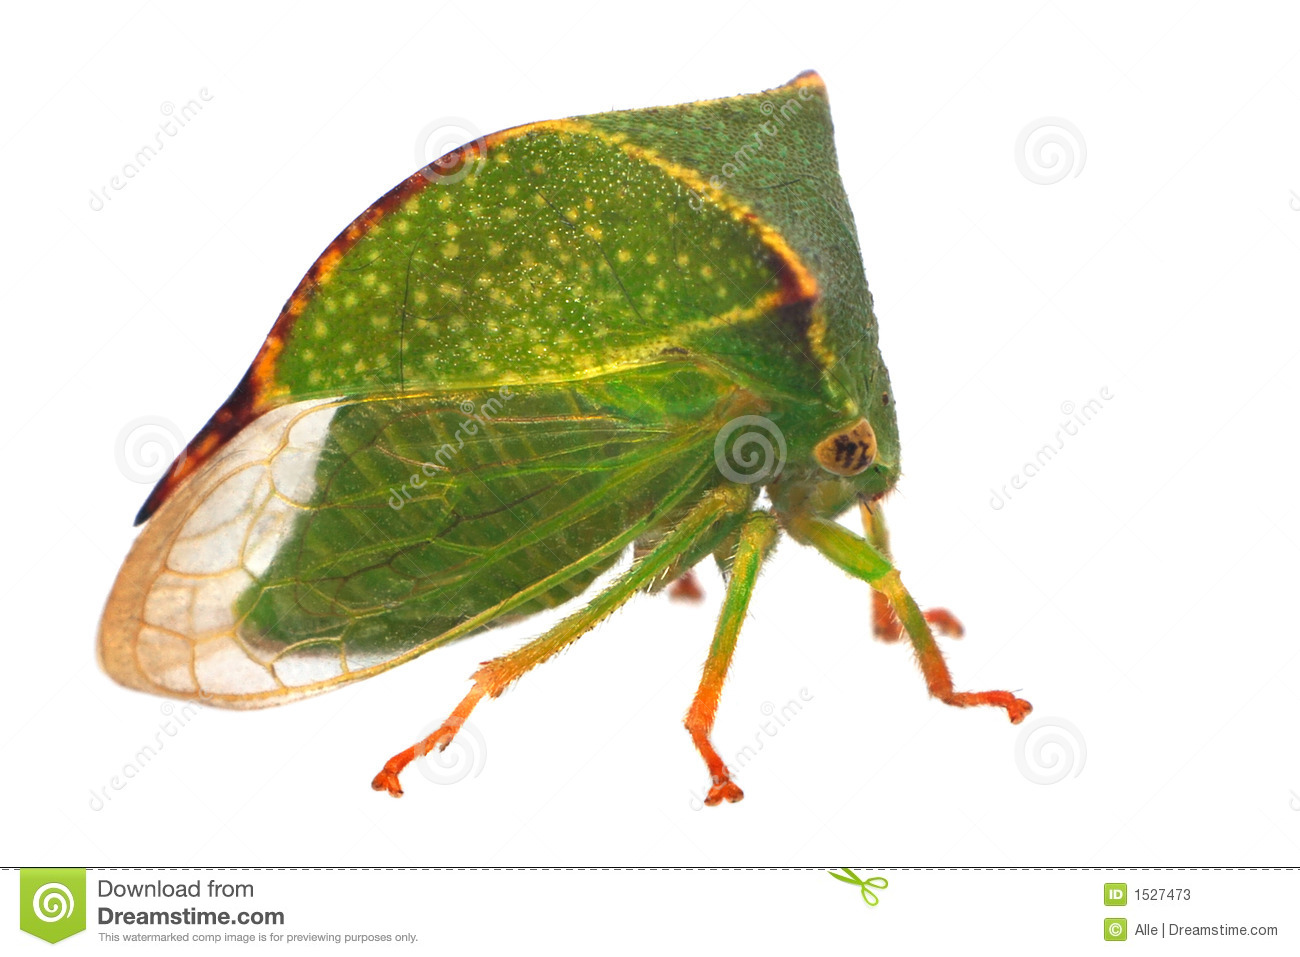 Treehopper clipart #18, Download drawings